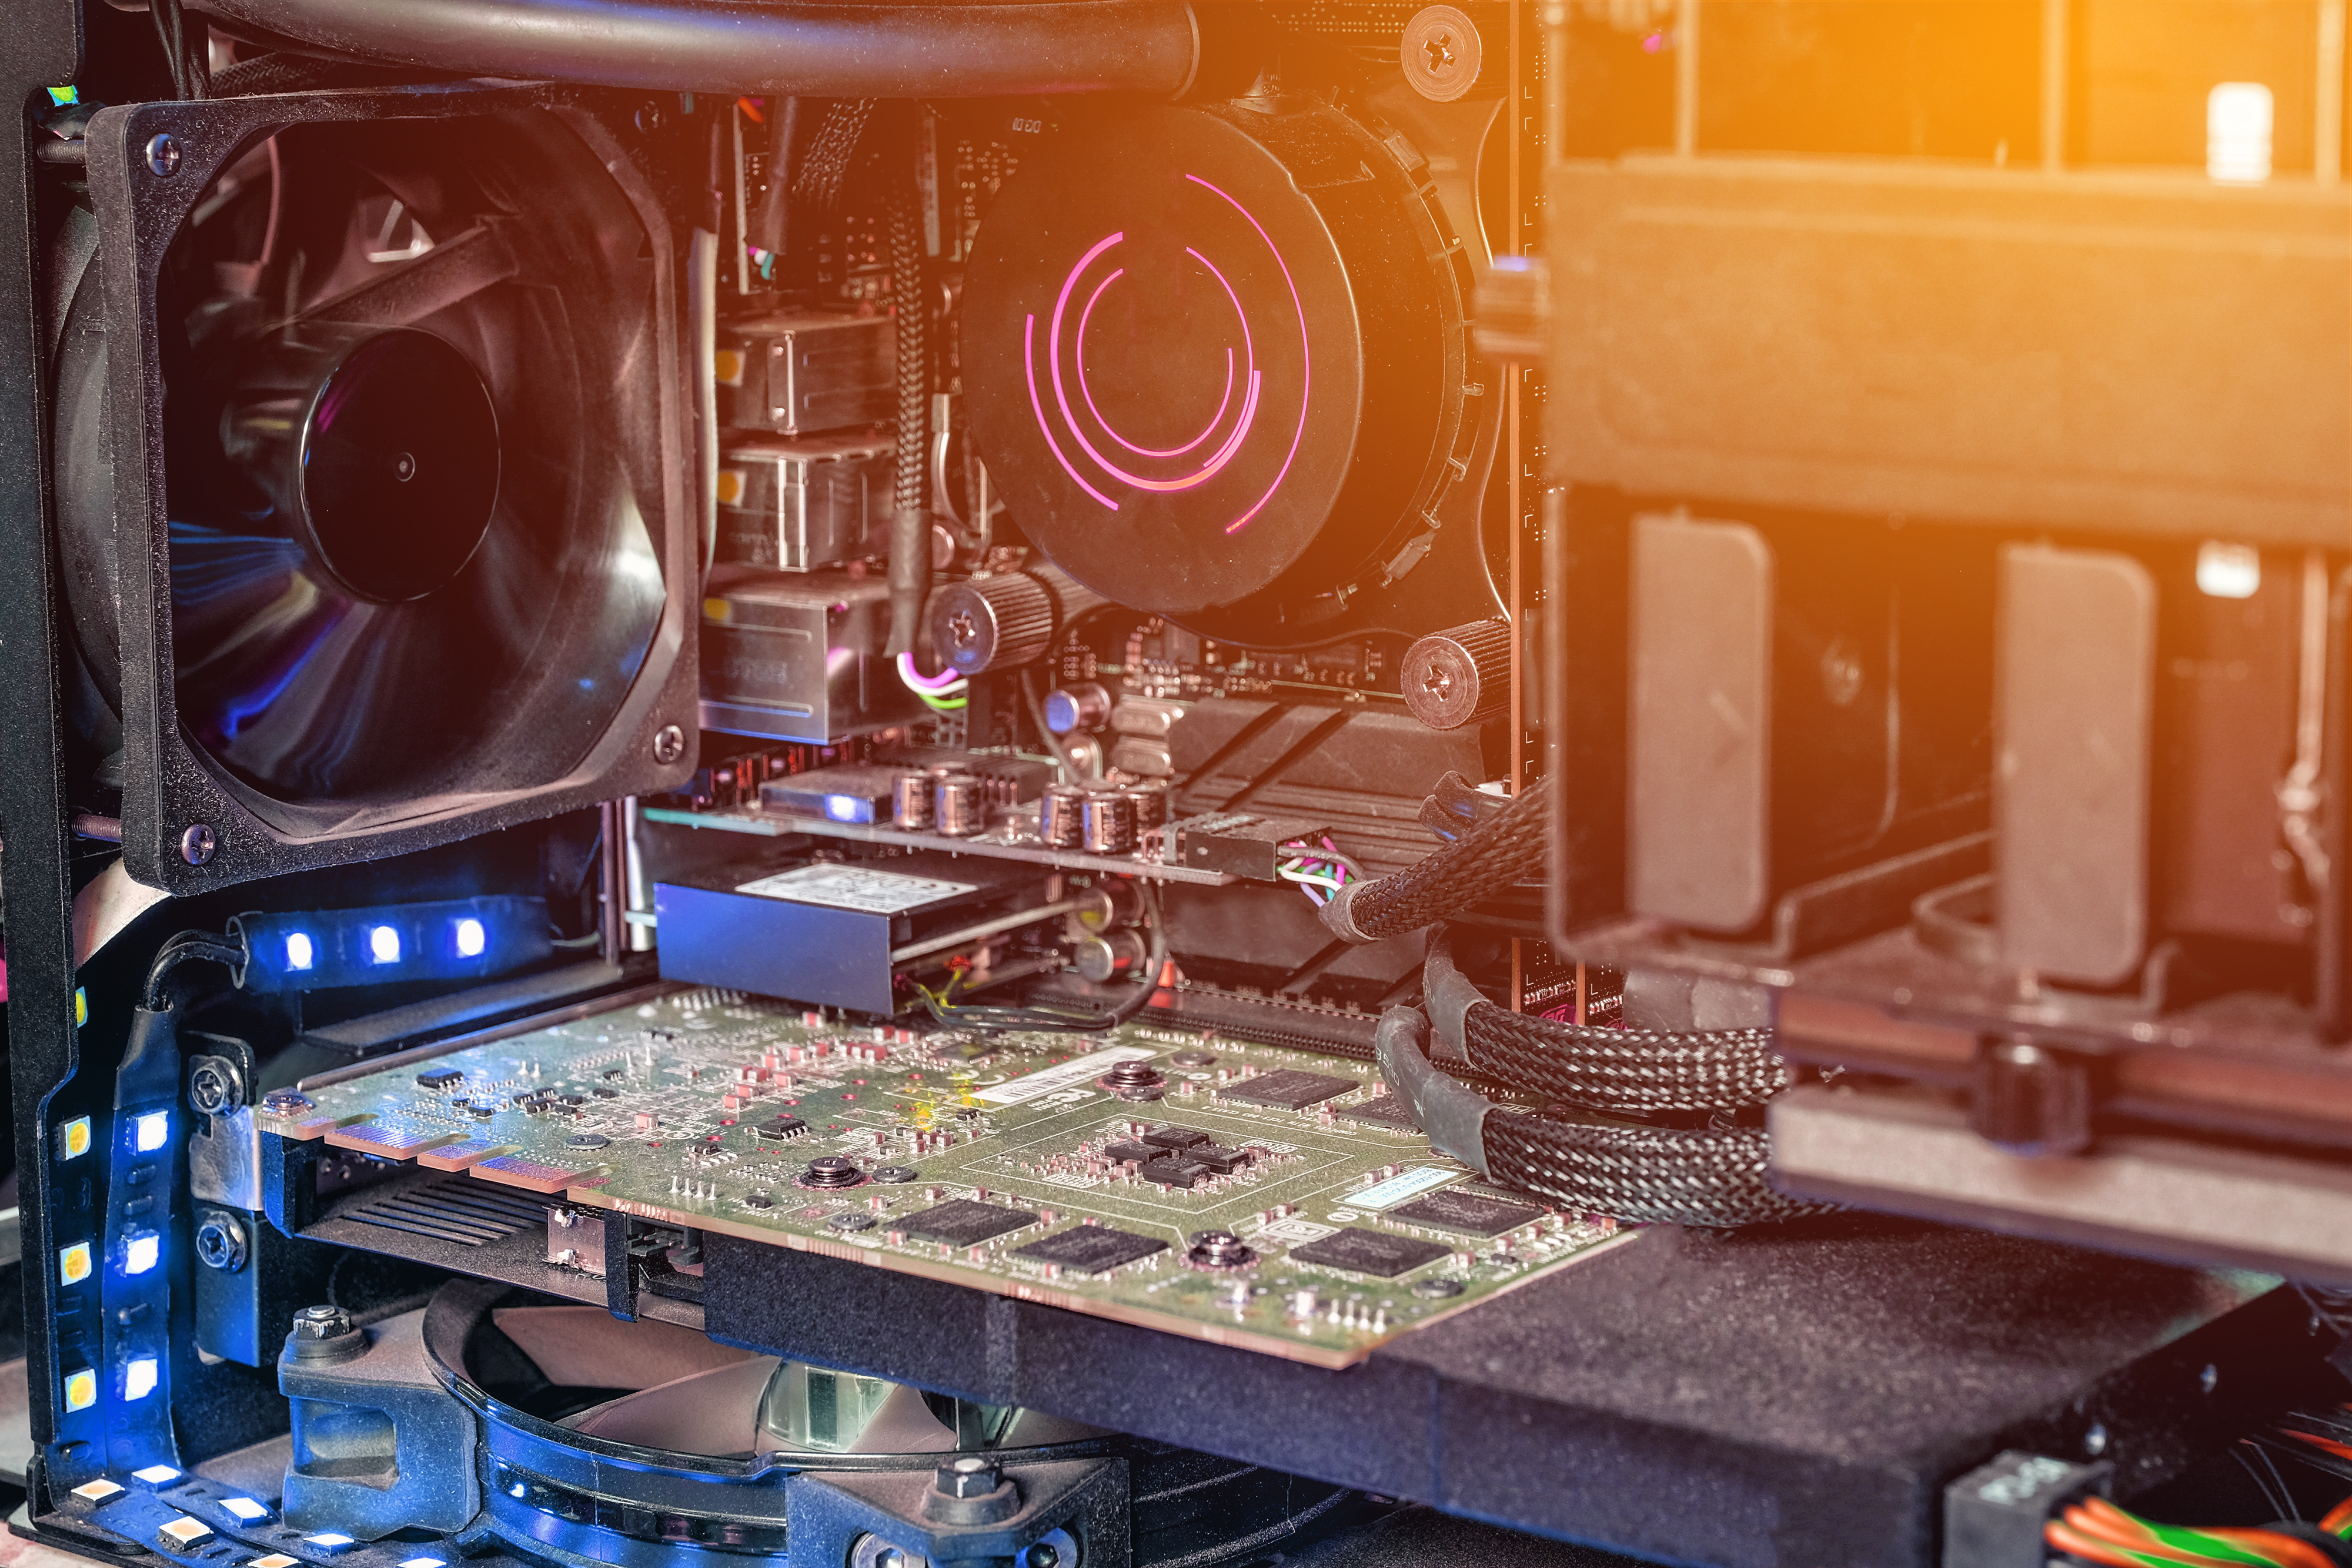 How to Tell If a Motherboard Is an ATX | Chron com